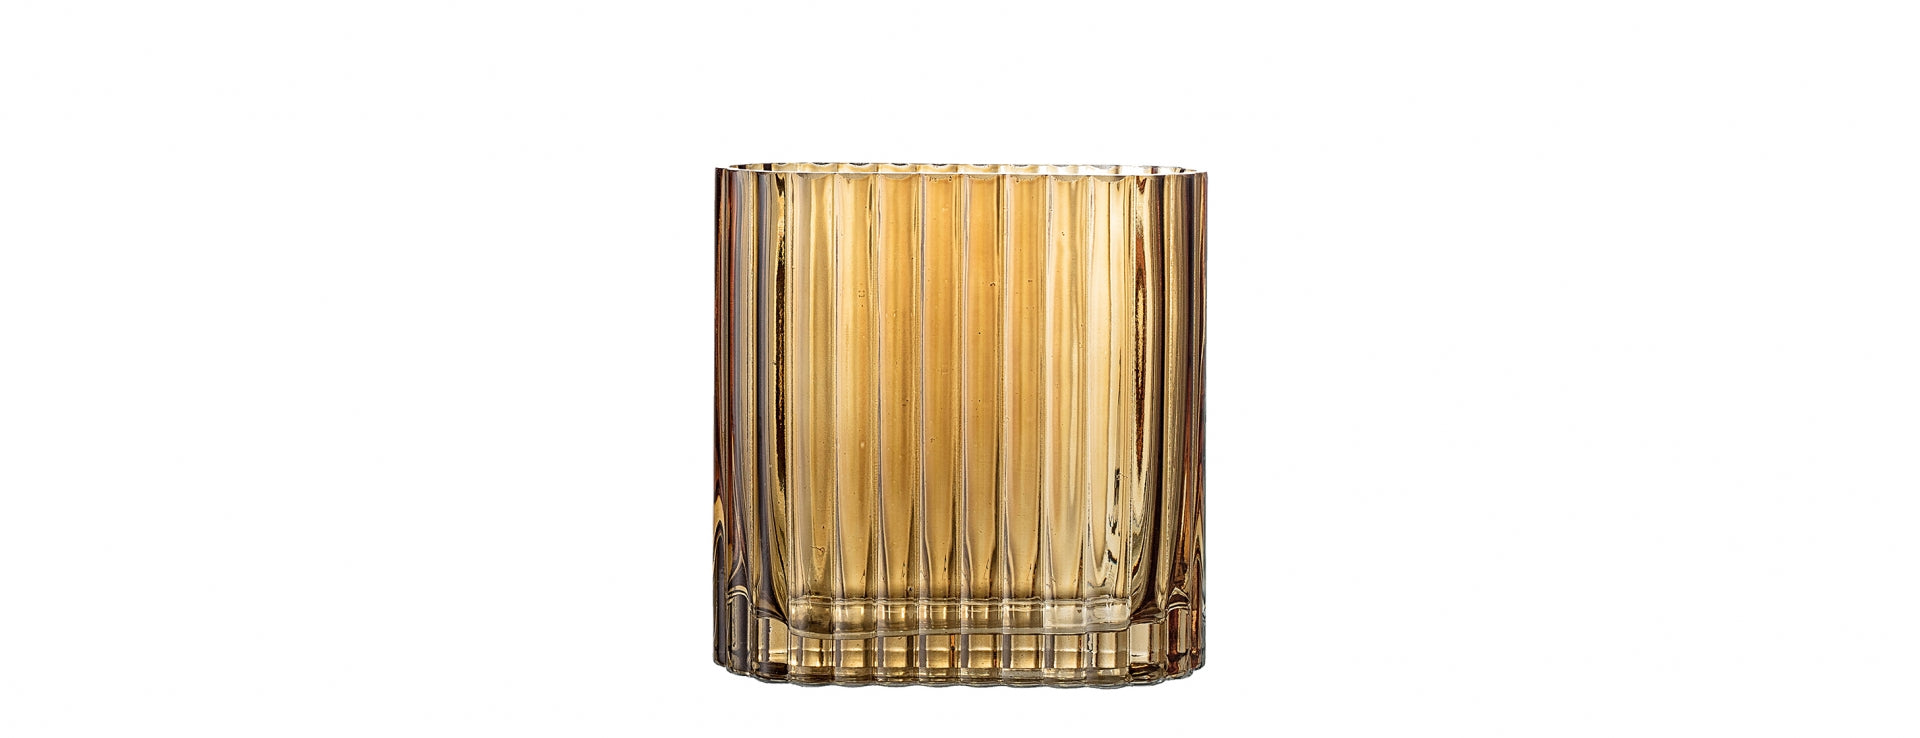 Bloomingville Vase - Glass - Brown - Small